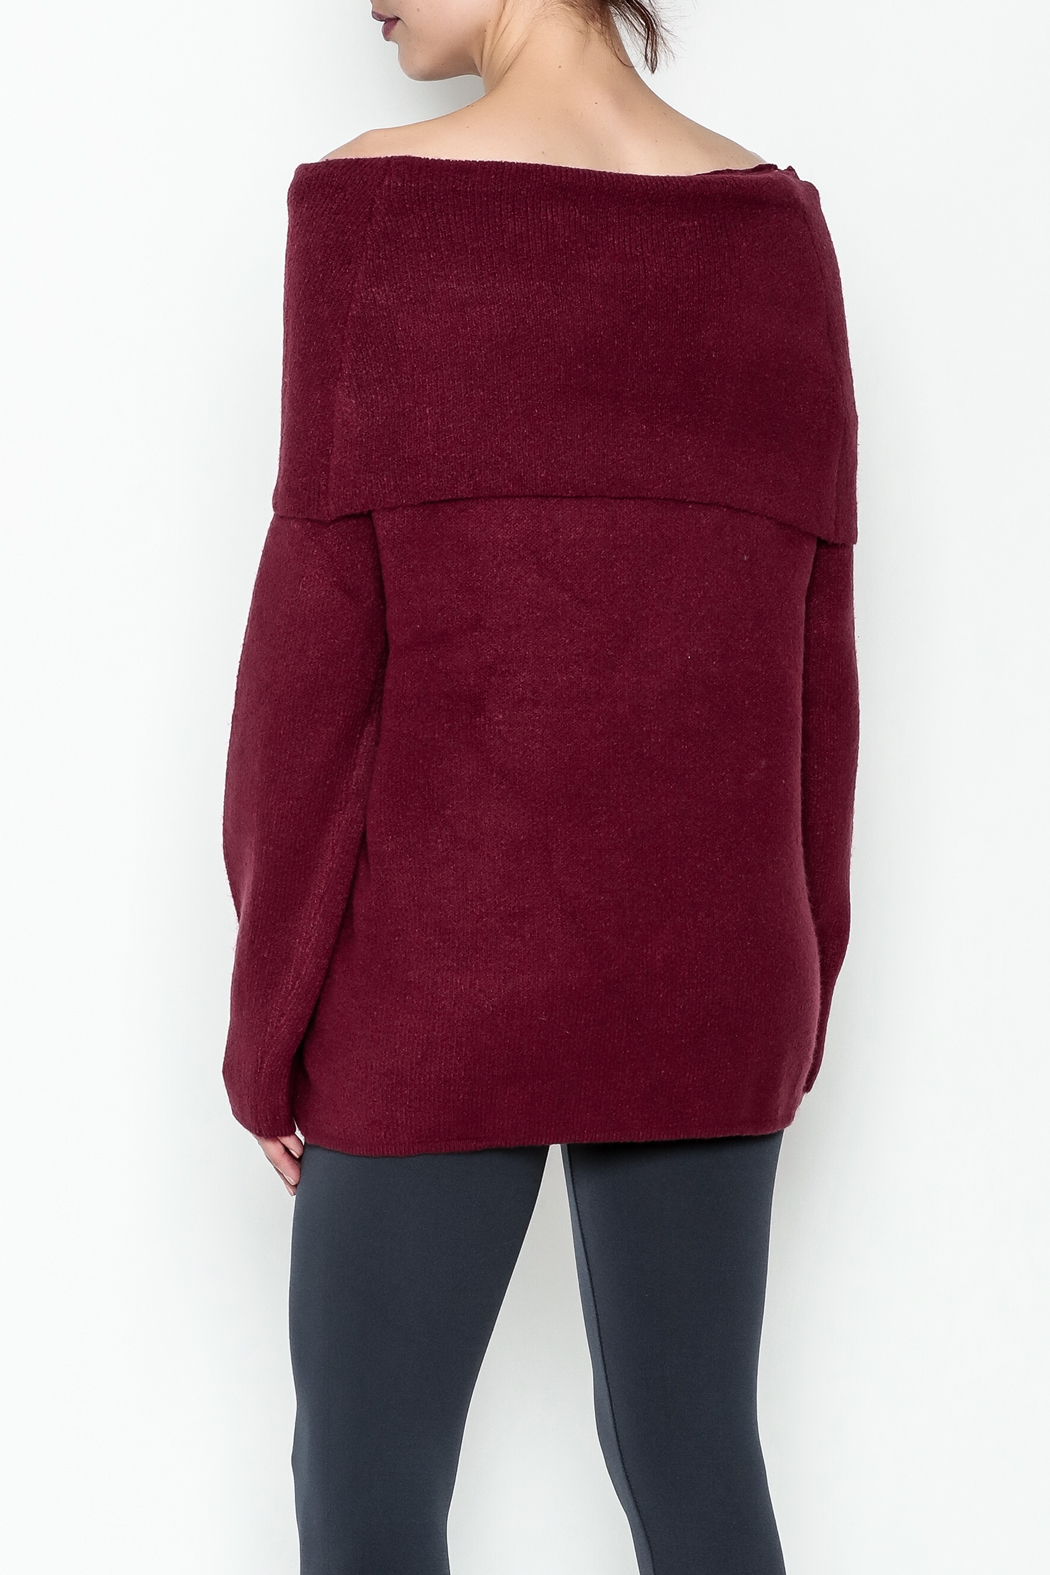 Elan Pullover Knit Sweater - Back Cropped Image